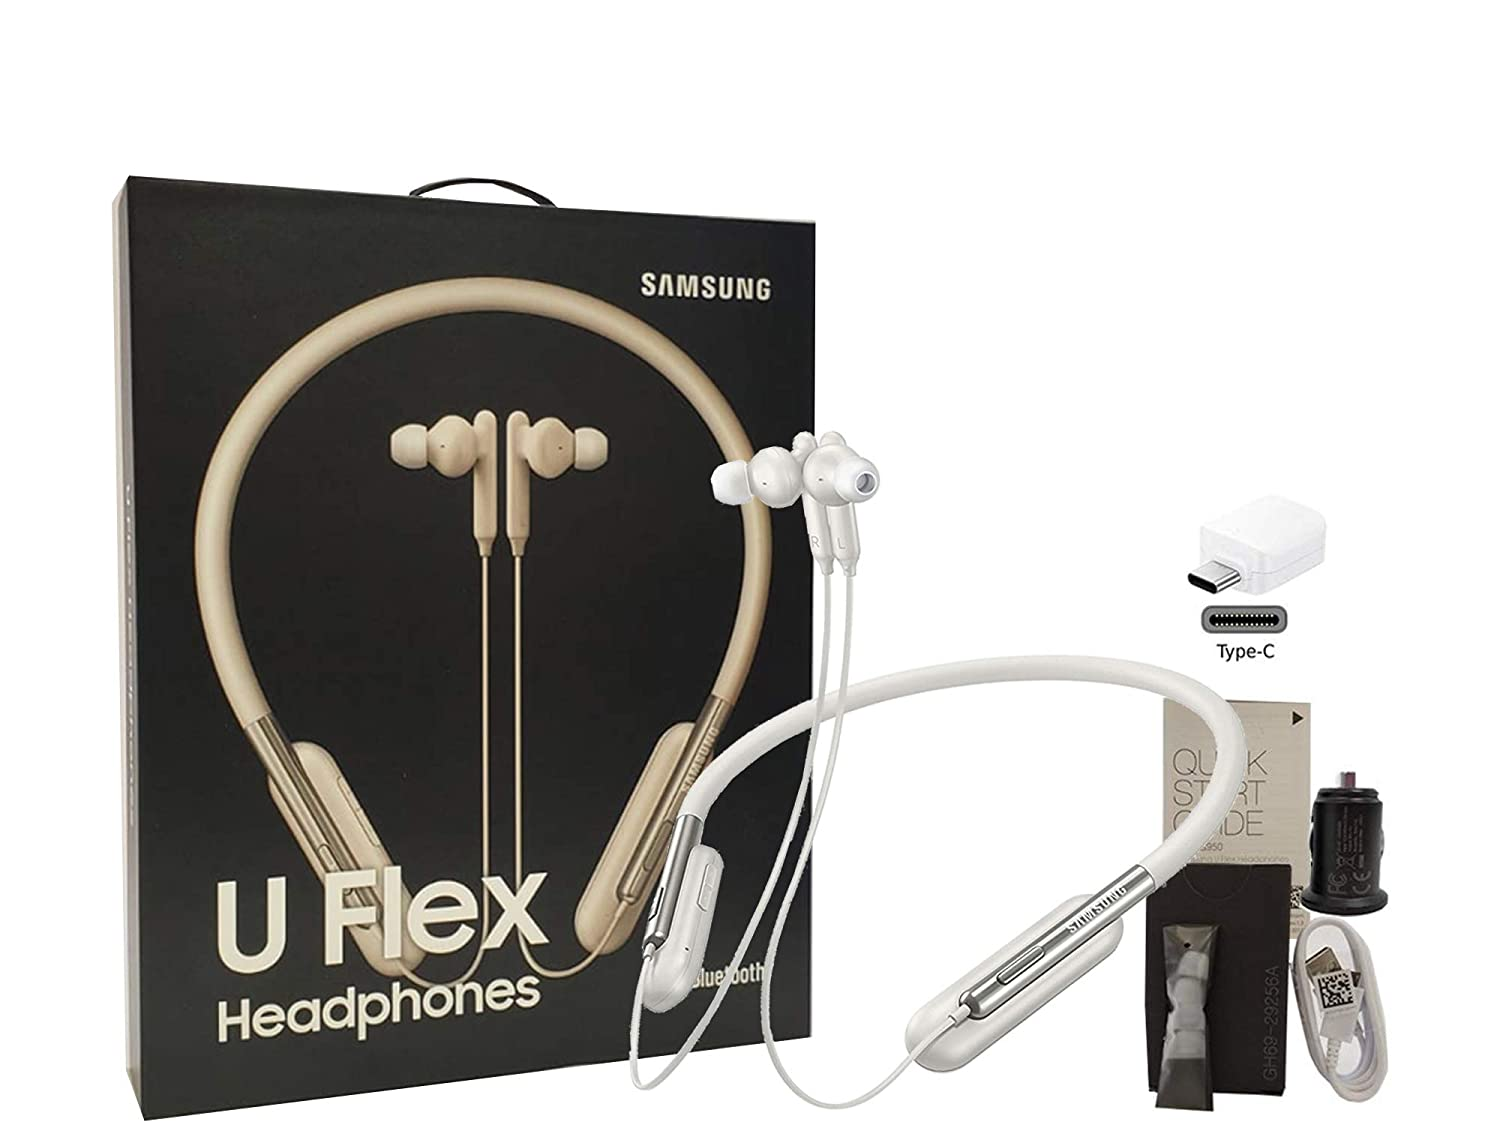 Samsung U Flex Bluetooth Wireless in-Ear Headphones HD Premium Sound and Mic – with Car-Charger 4FT USB Kit US Model – Retail Packing